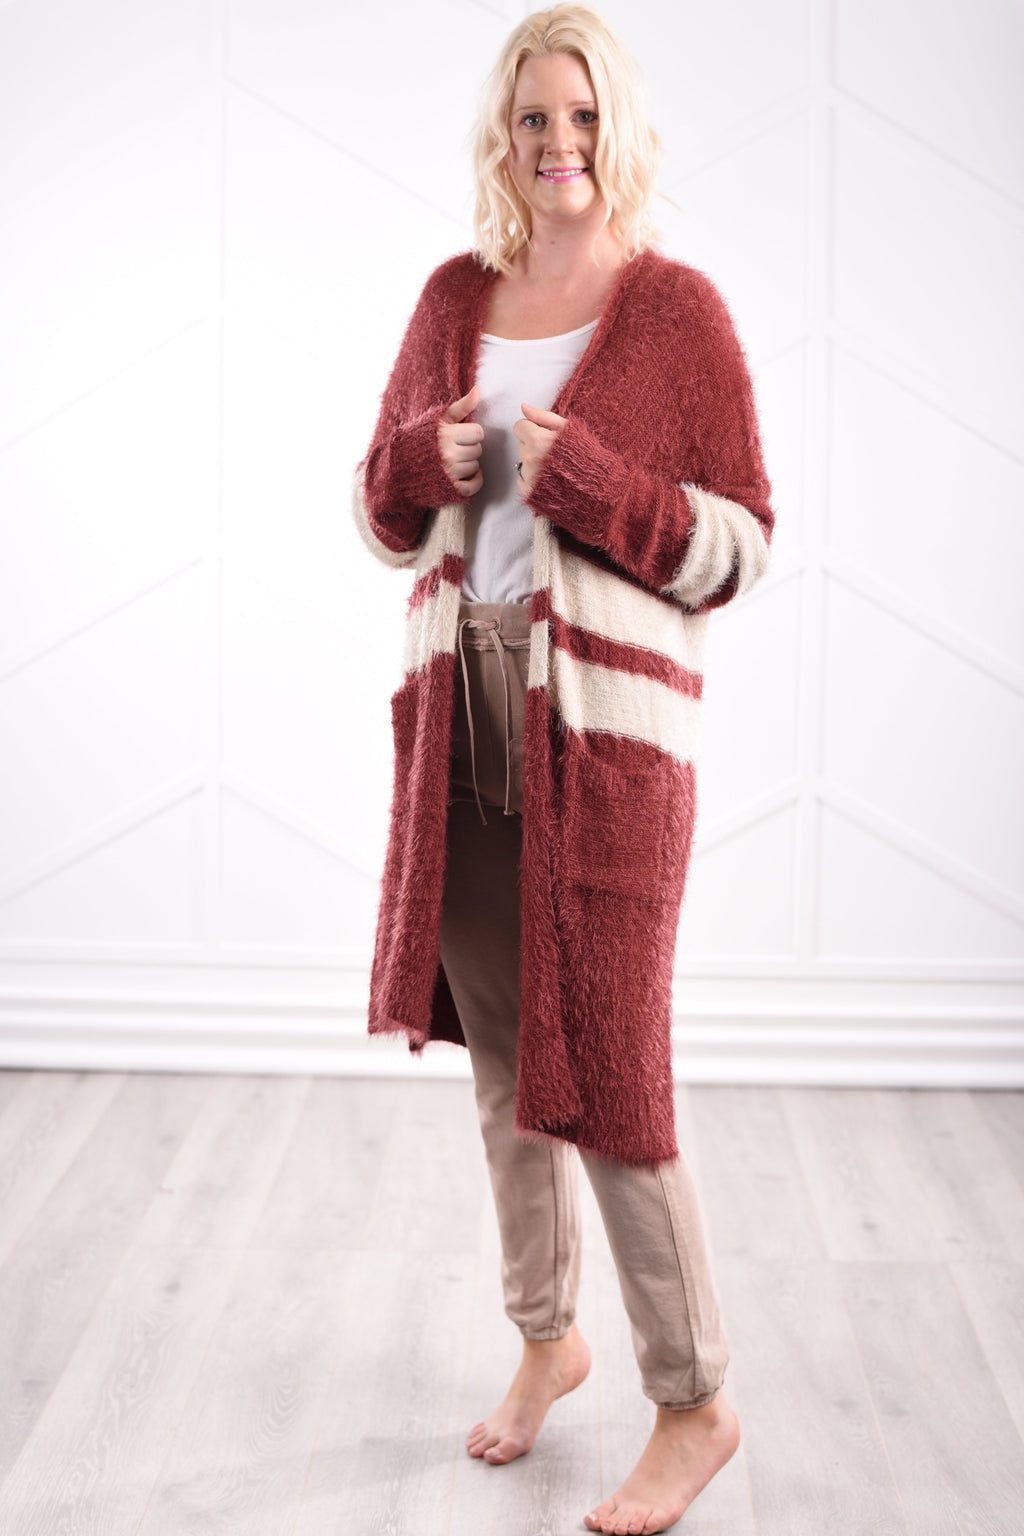 Georgia Fuzzy Cardigan - women's boutique clothing Strong Confident You